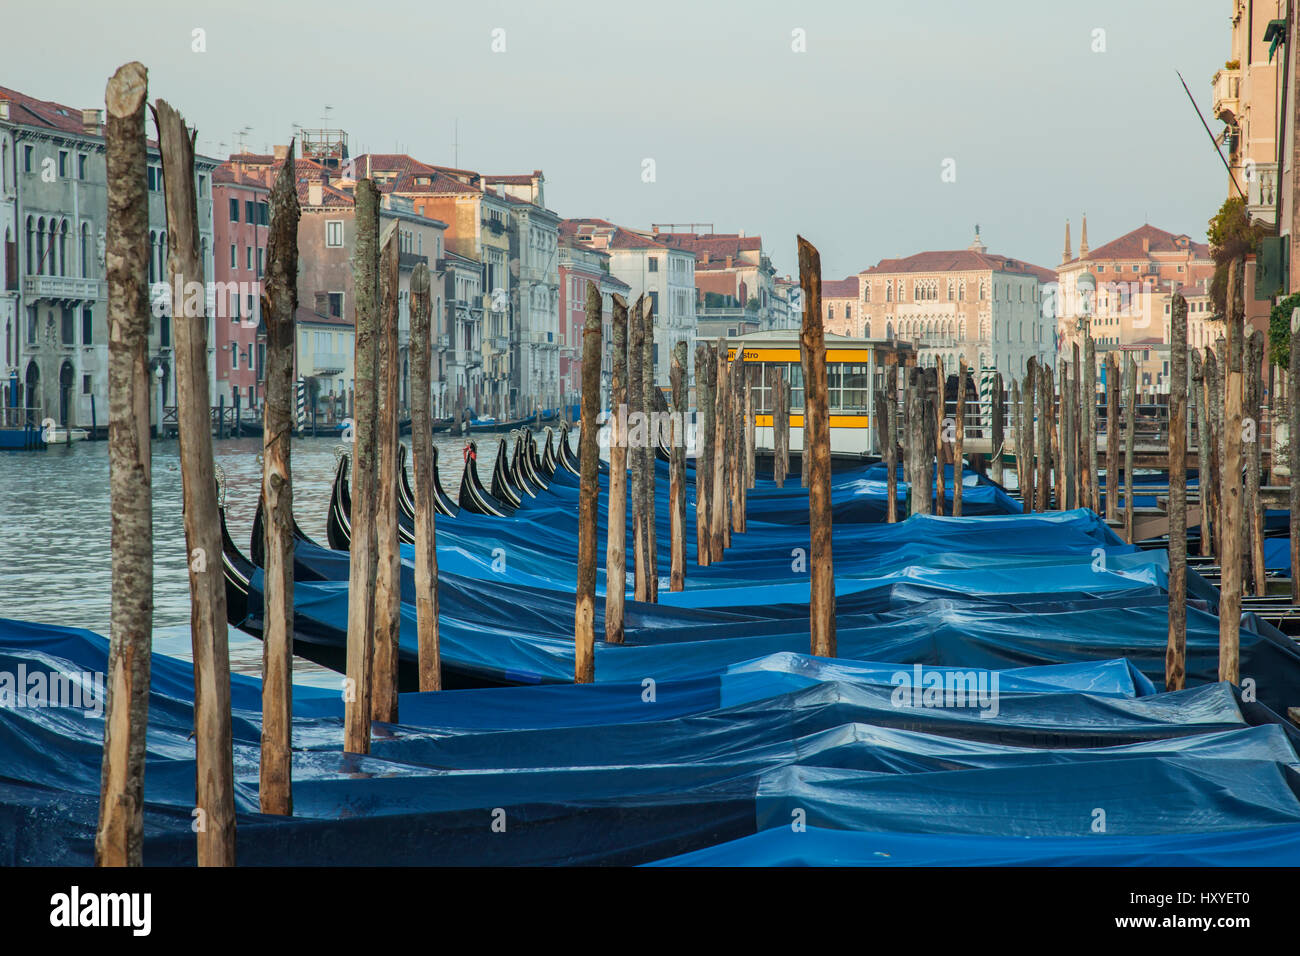 Gondolas moored on Grand Canal, Venice, Italy. Early morning in spring. Stock Photo